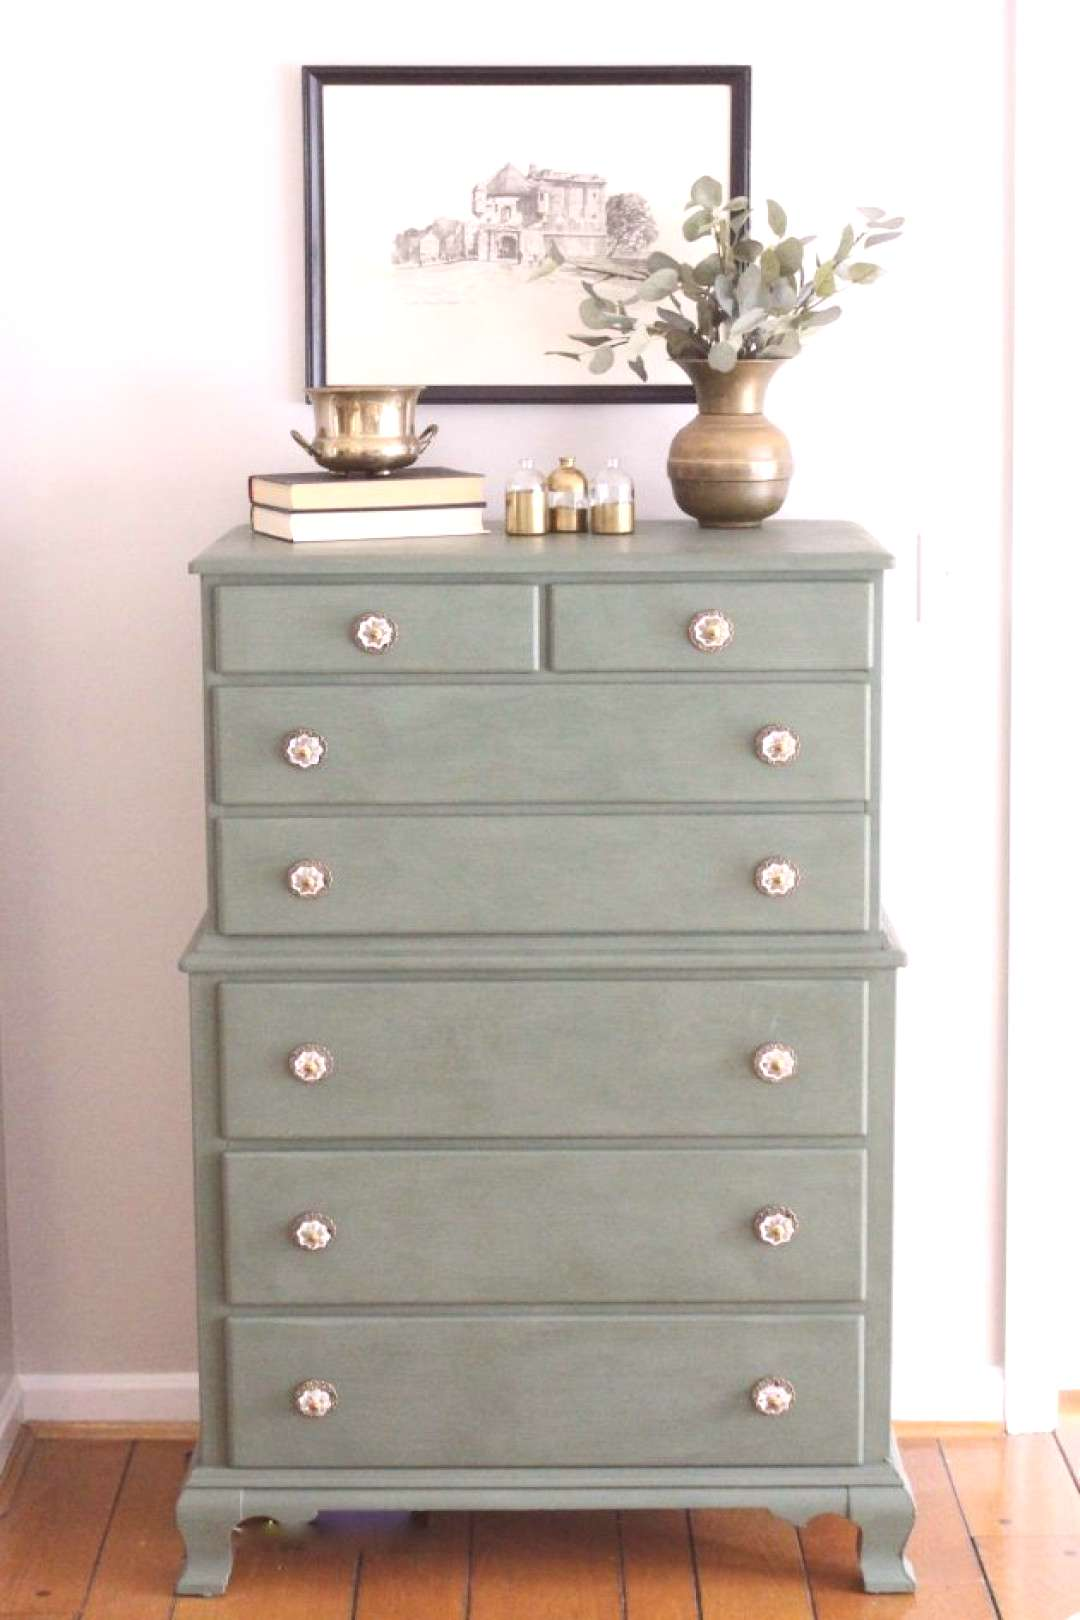 Green Painted Dresser for a Brand New Look | White Cottage Home amp Living